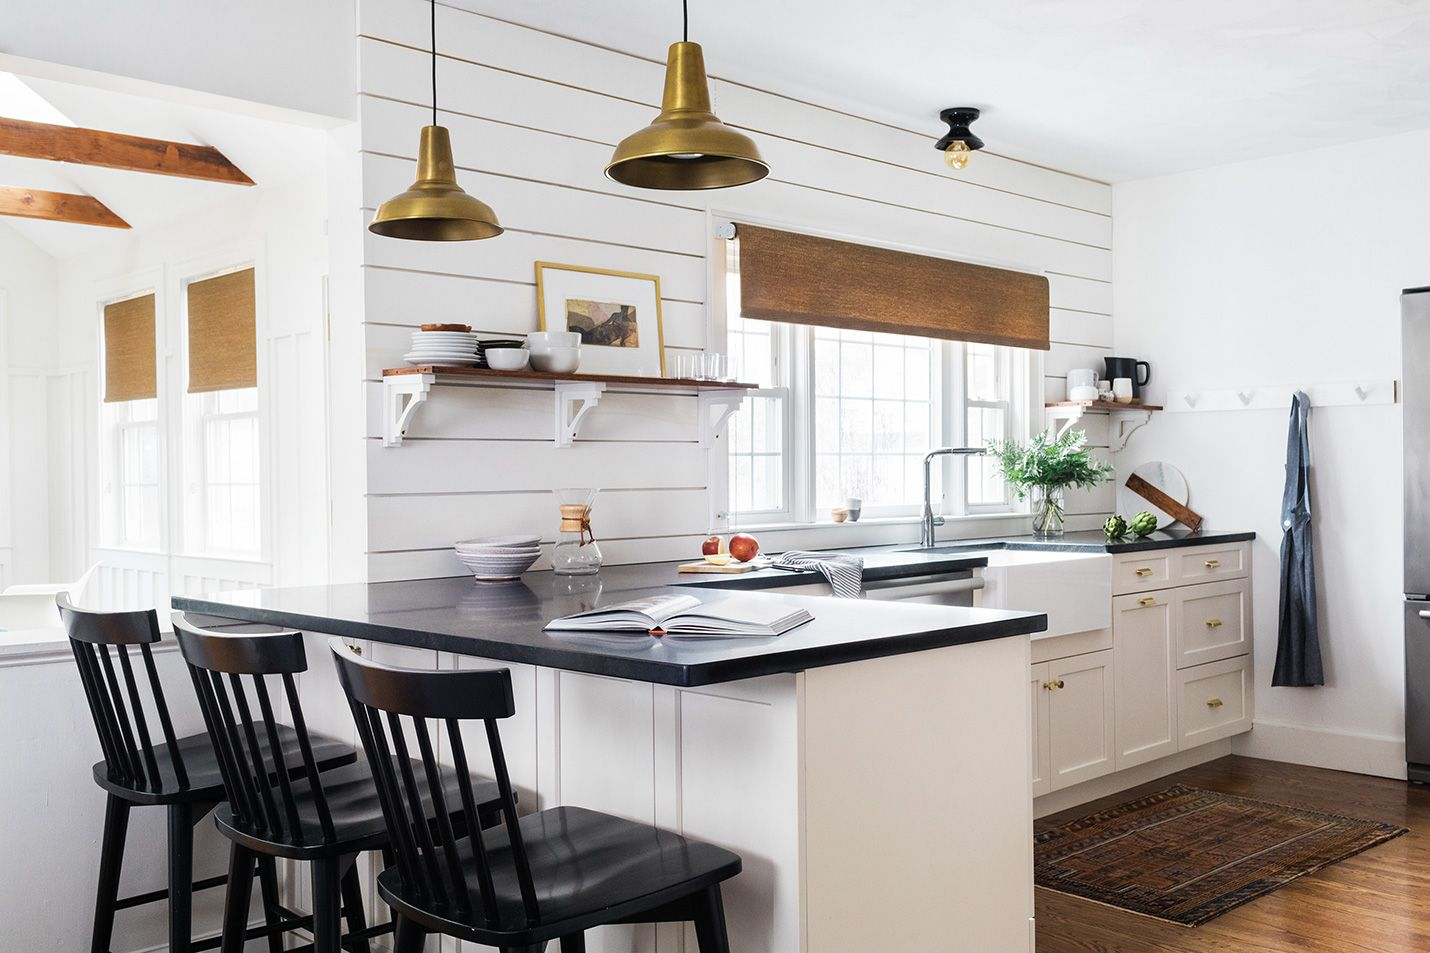 a modern scandinavian farmhouse with images kitchen style farmhouse interior farmhouse on kitchen interior farmhouse id=12497